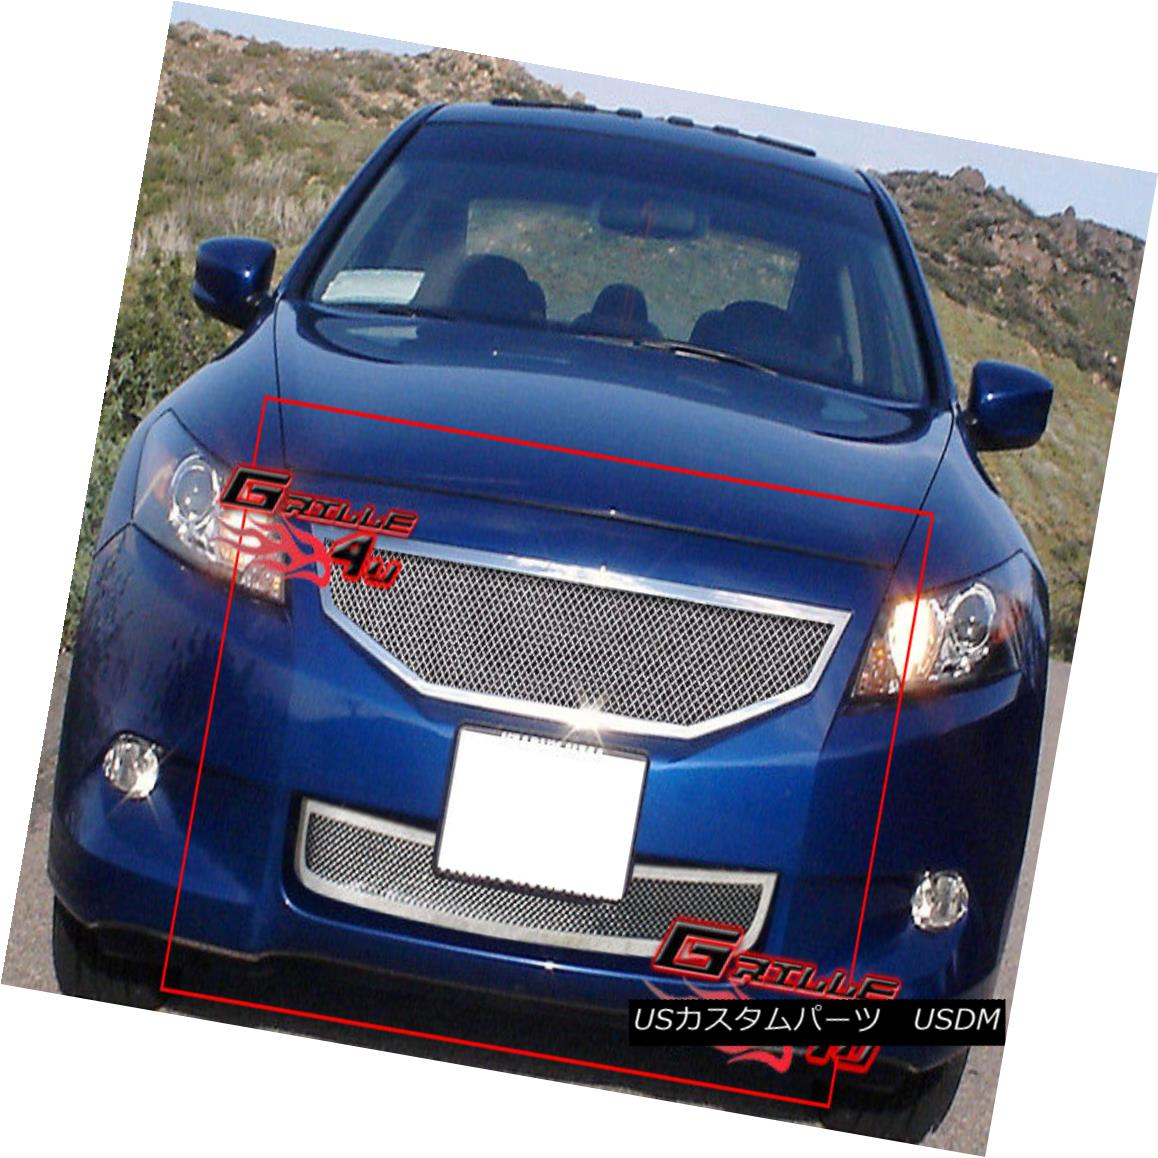 グリル Fits 2008-2010 Honda Accord Coupe Stainless Mesh Grille Combo Fond 2008-2010 Honda Accord Coupeステンレスメッシュグリルコンボ